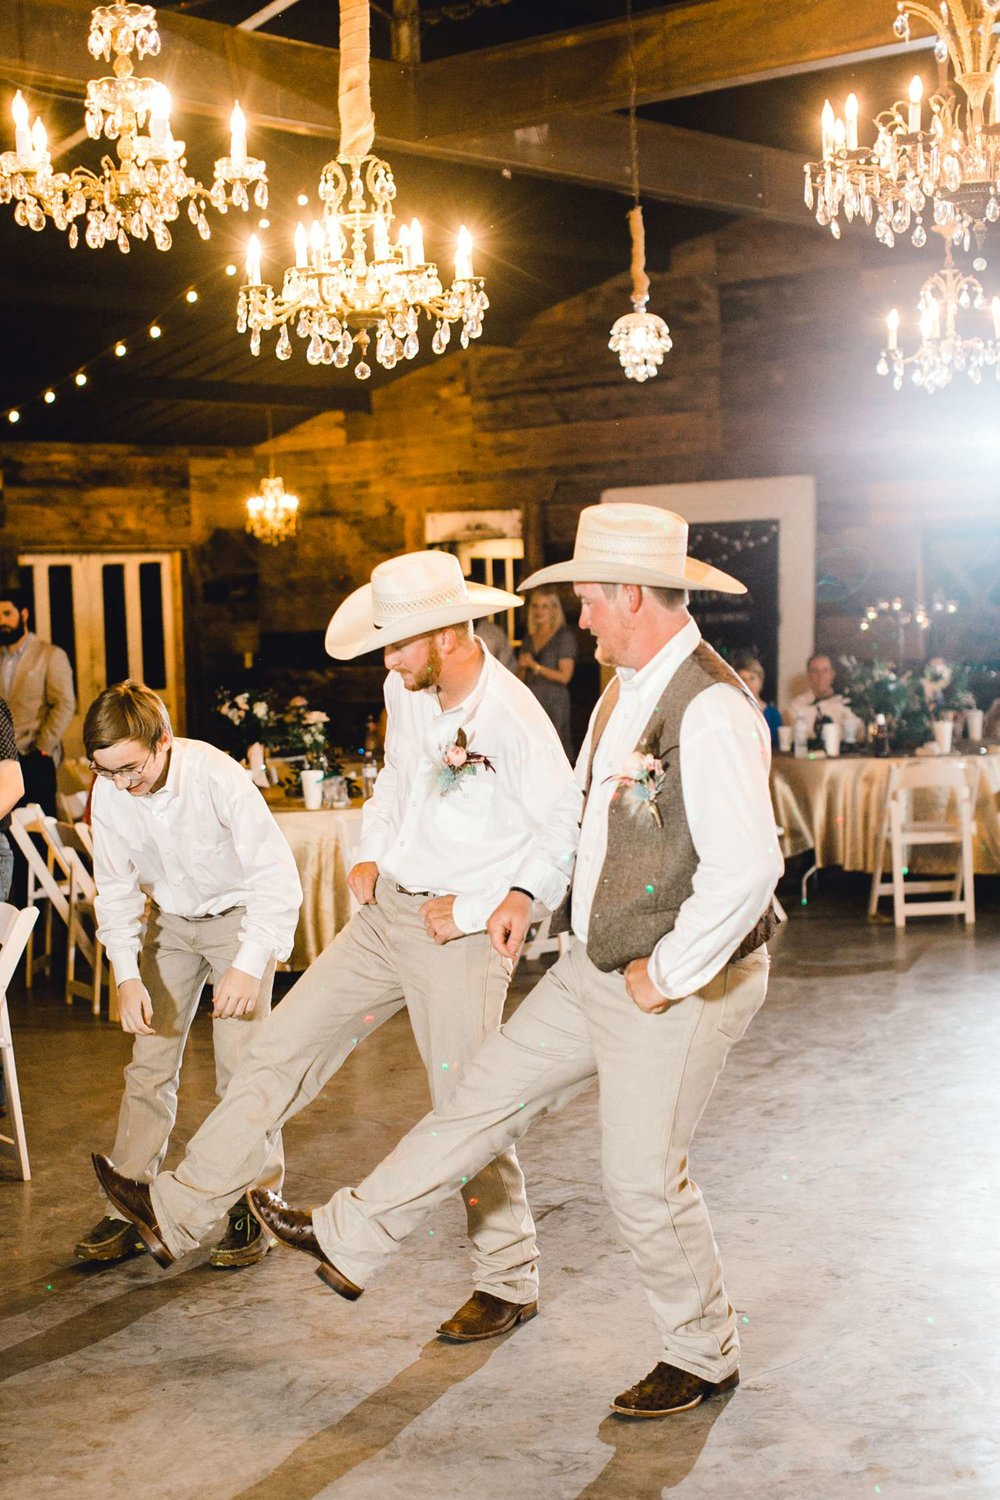 SARAH+TREVOR+BADGETT+SPARROW+CREEK+GRAHAM+TEXAS+ALLEEJ+WEDDINGS_0157.jpg